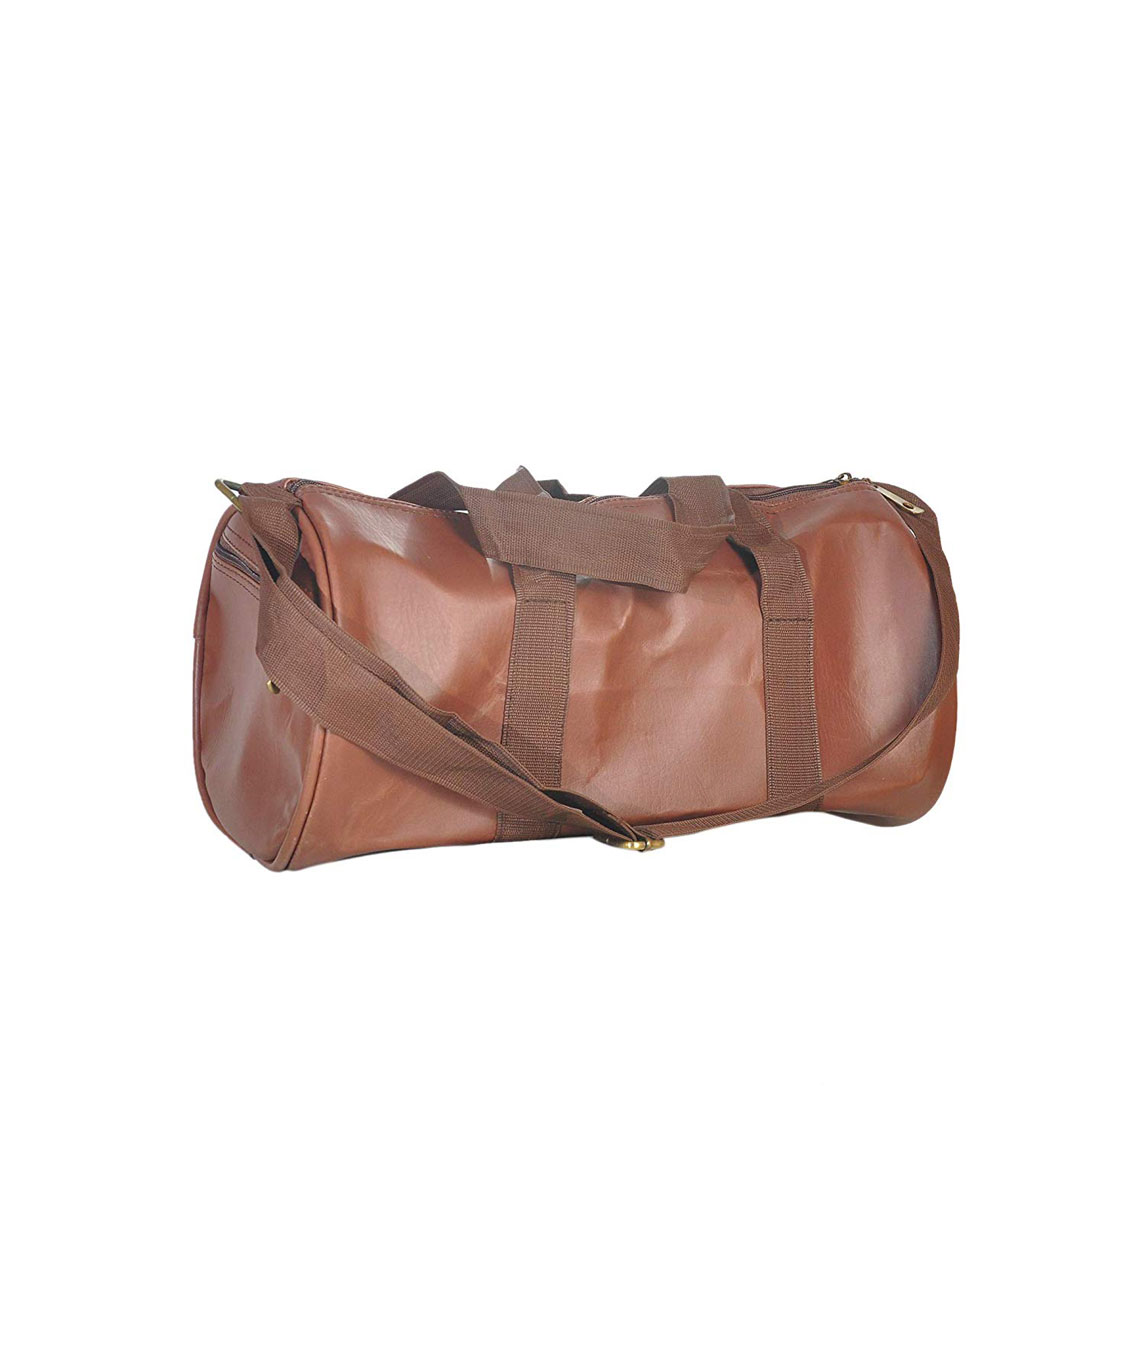 Faisal Raza Bag Smart Duffel Bag for Gym and Travelling(Brown/20L)